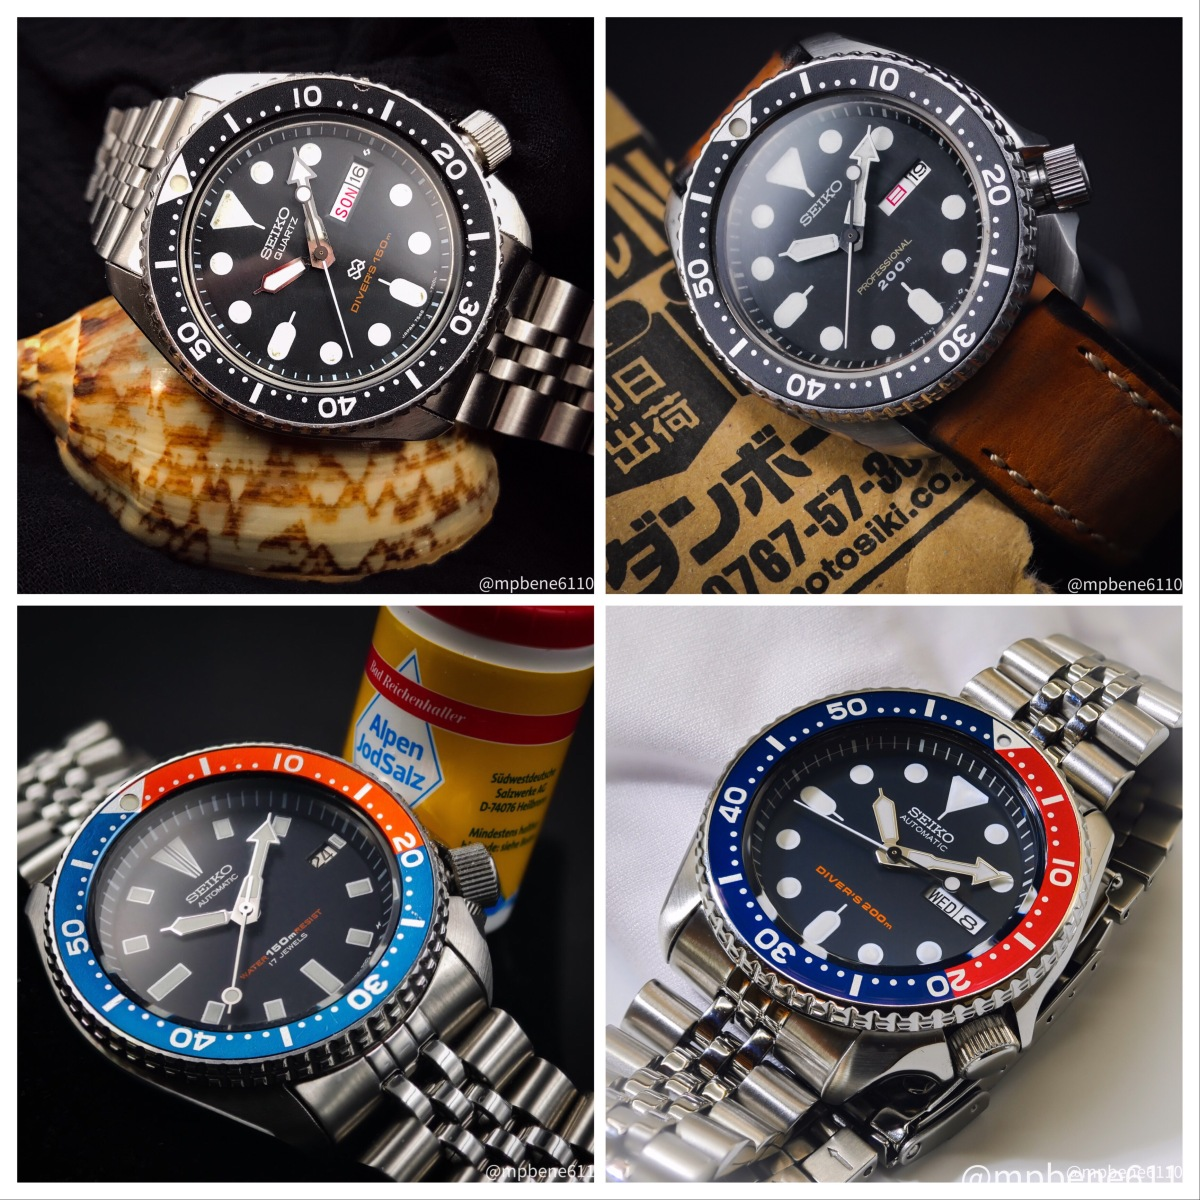 Standing on the shoulders of giants: A short glimpse at the history of the SKX007/009